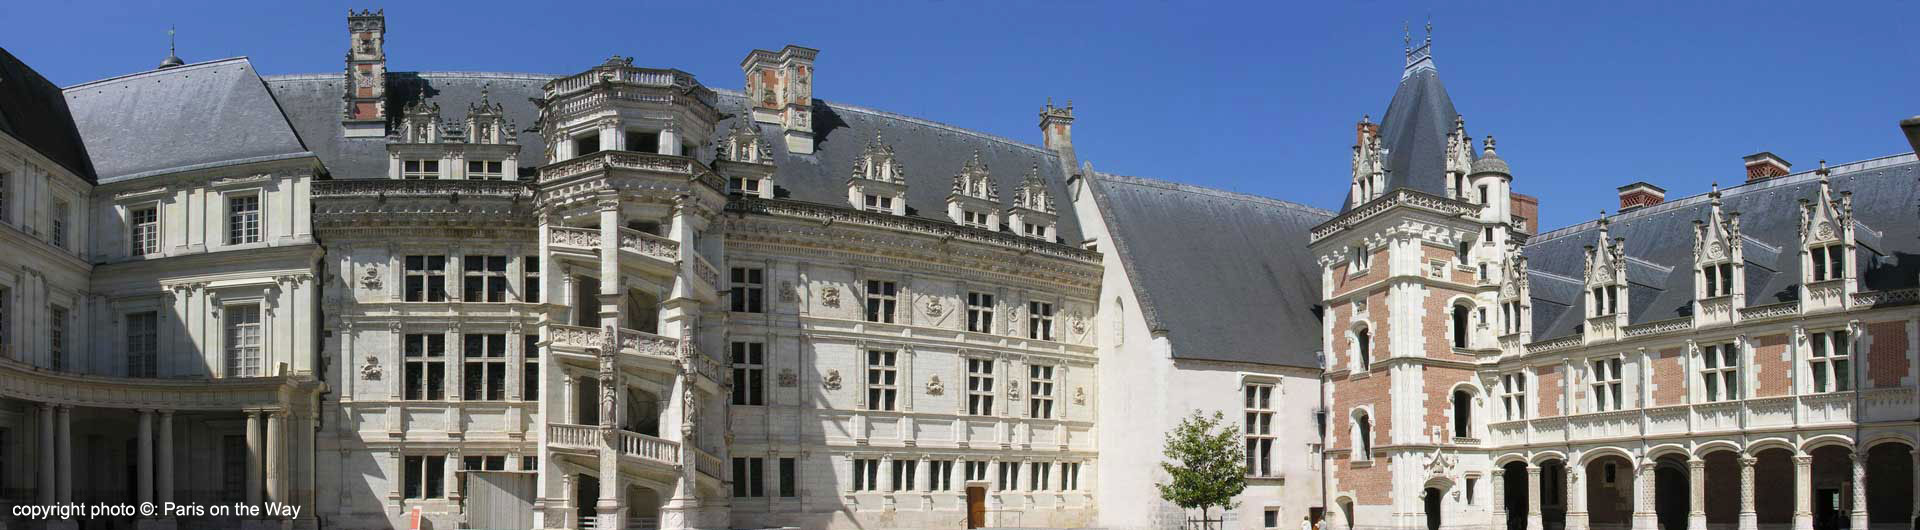 Guided Tour of Blois